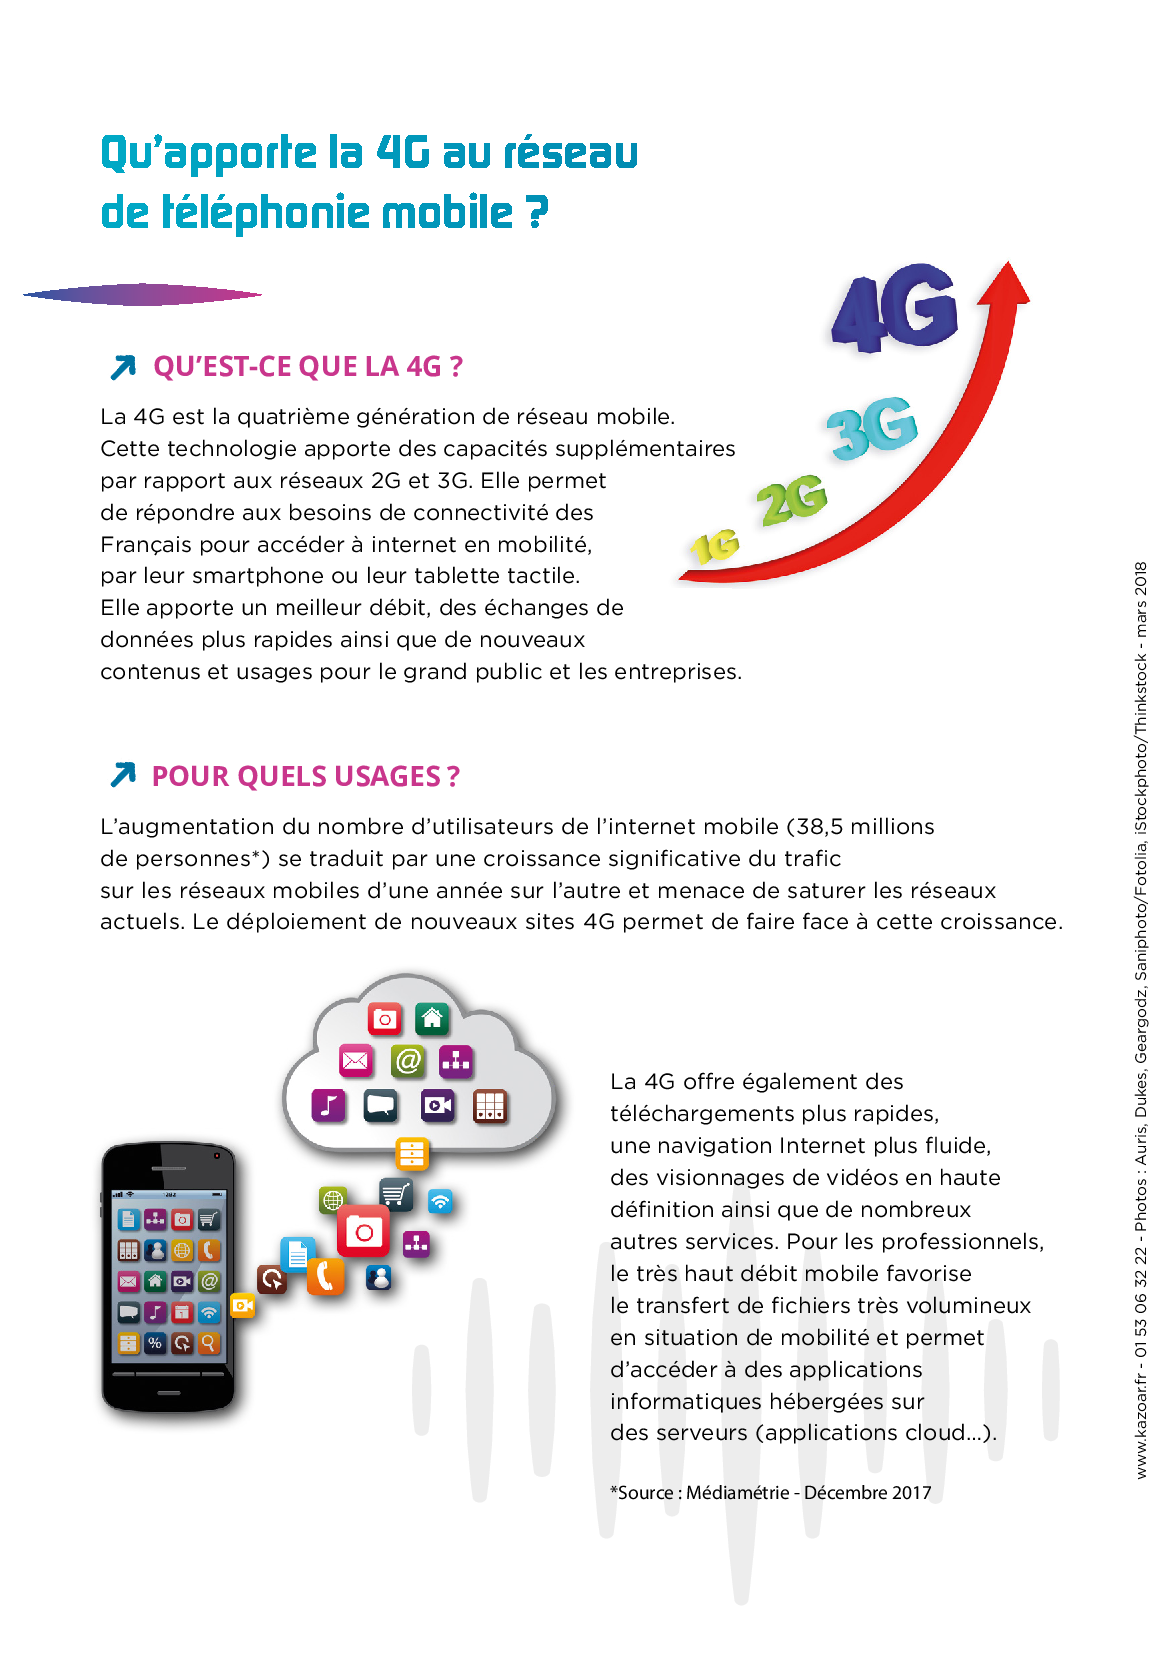 ANFR_brochure-4G-Avril2018 4 of 4